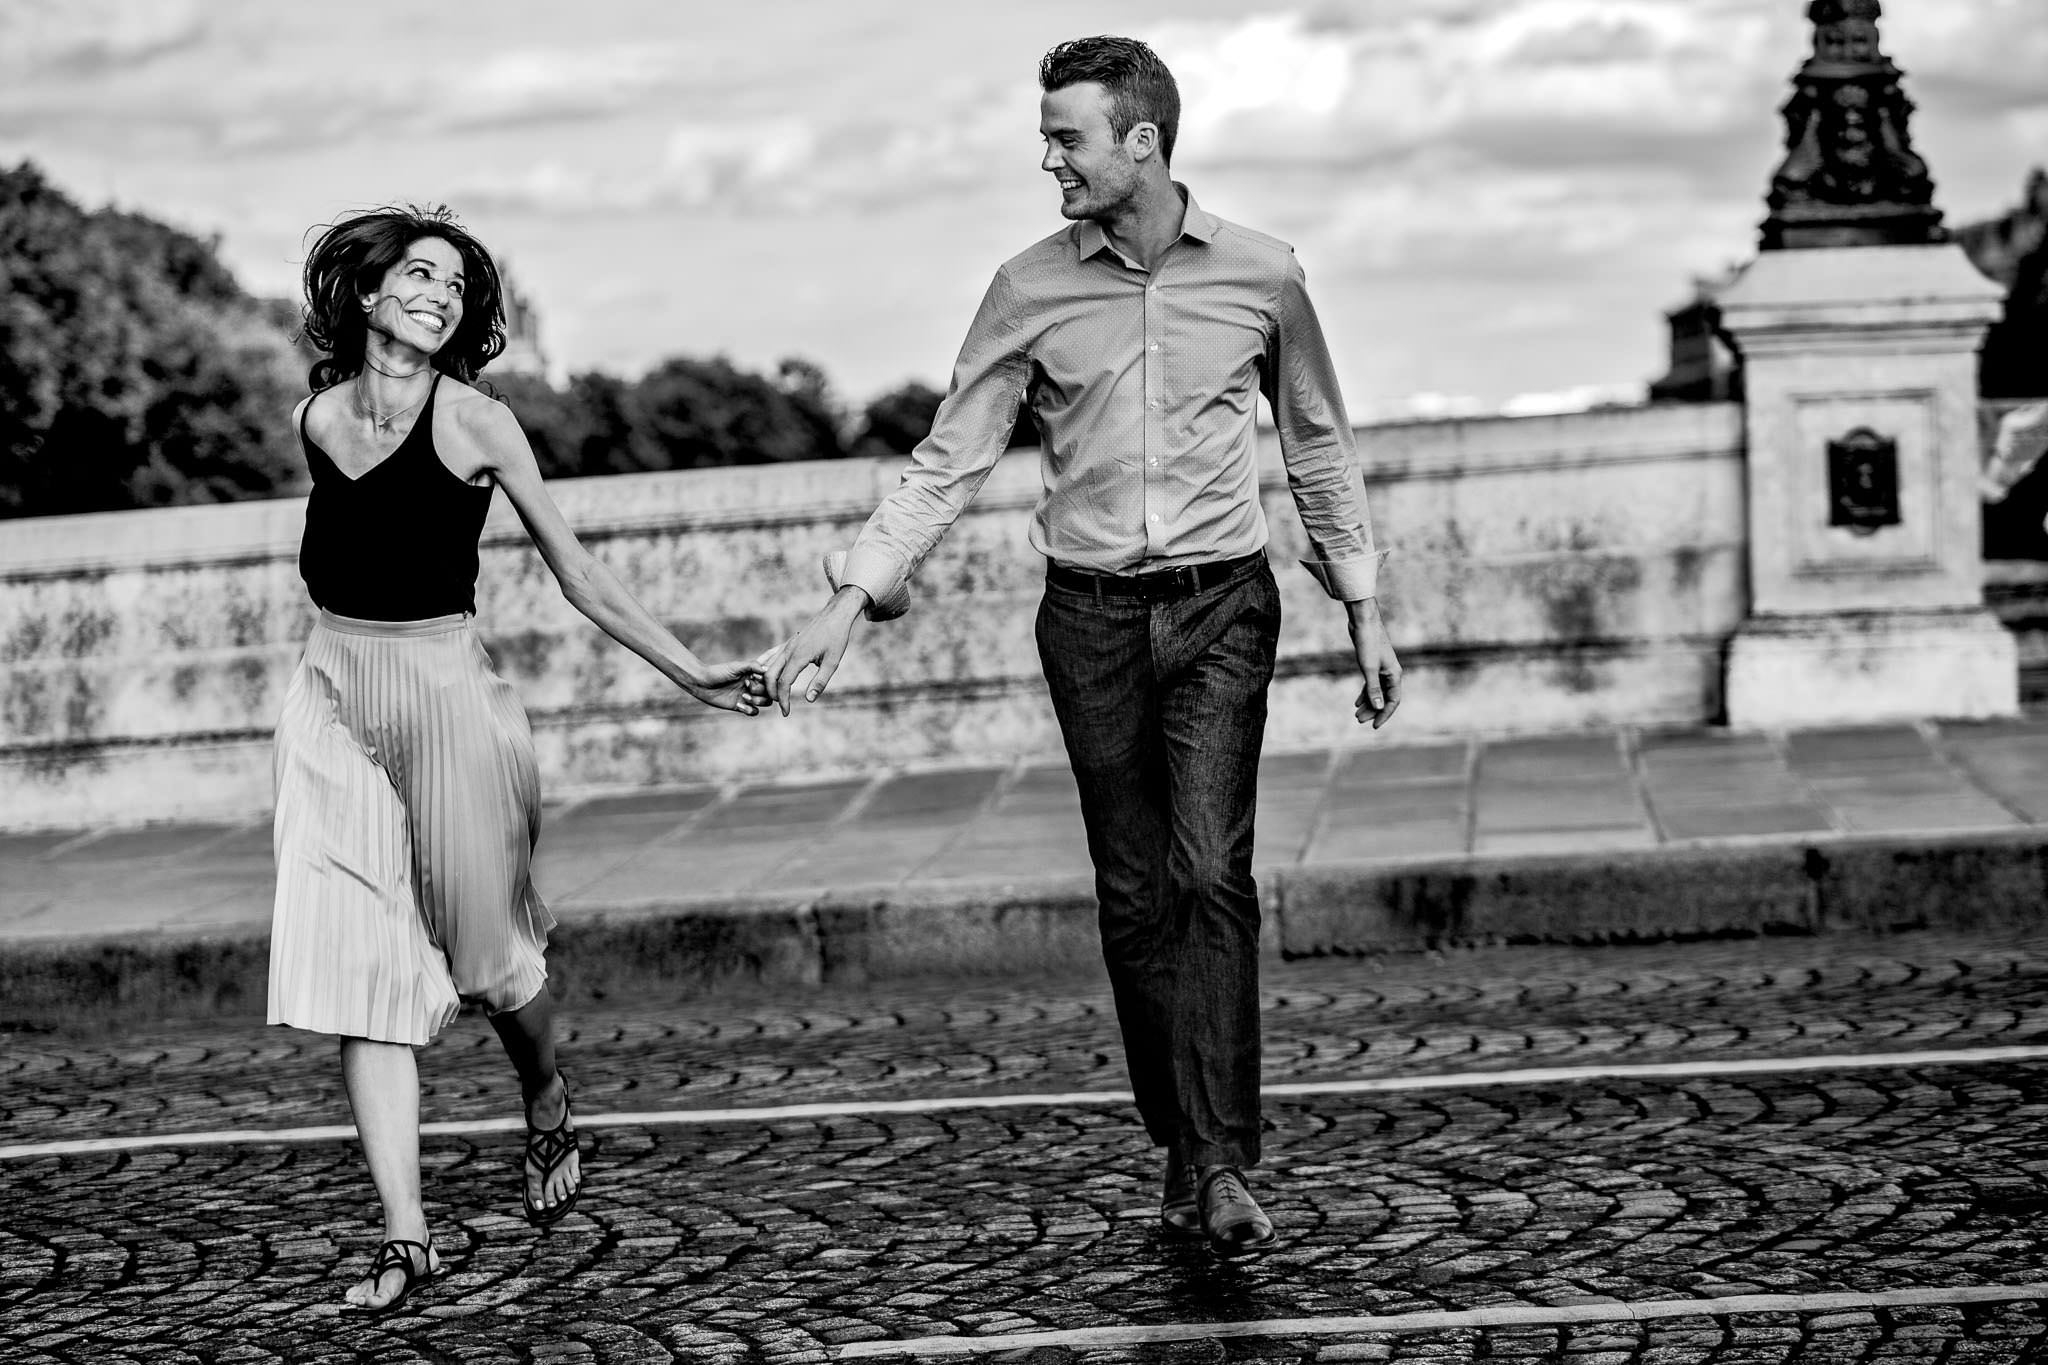 Engagement photo on oldest bridge in Paris France while running across cobble stones